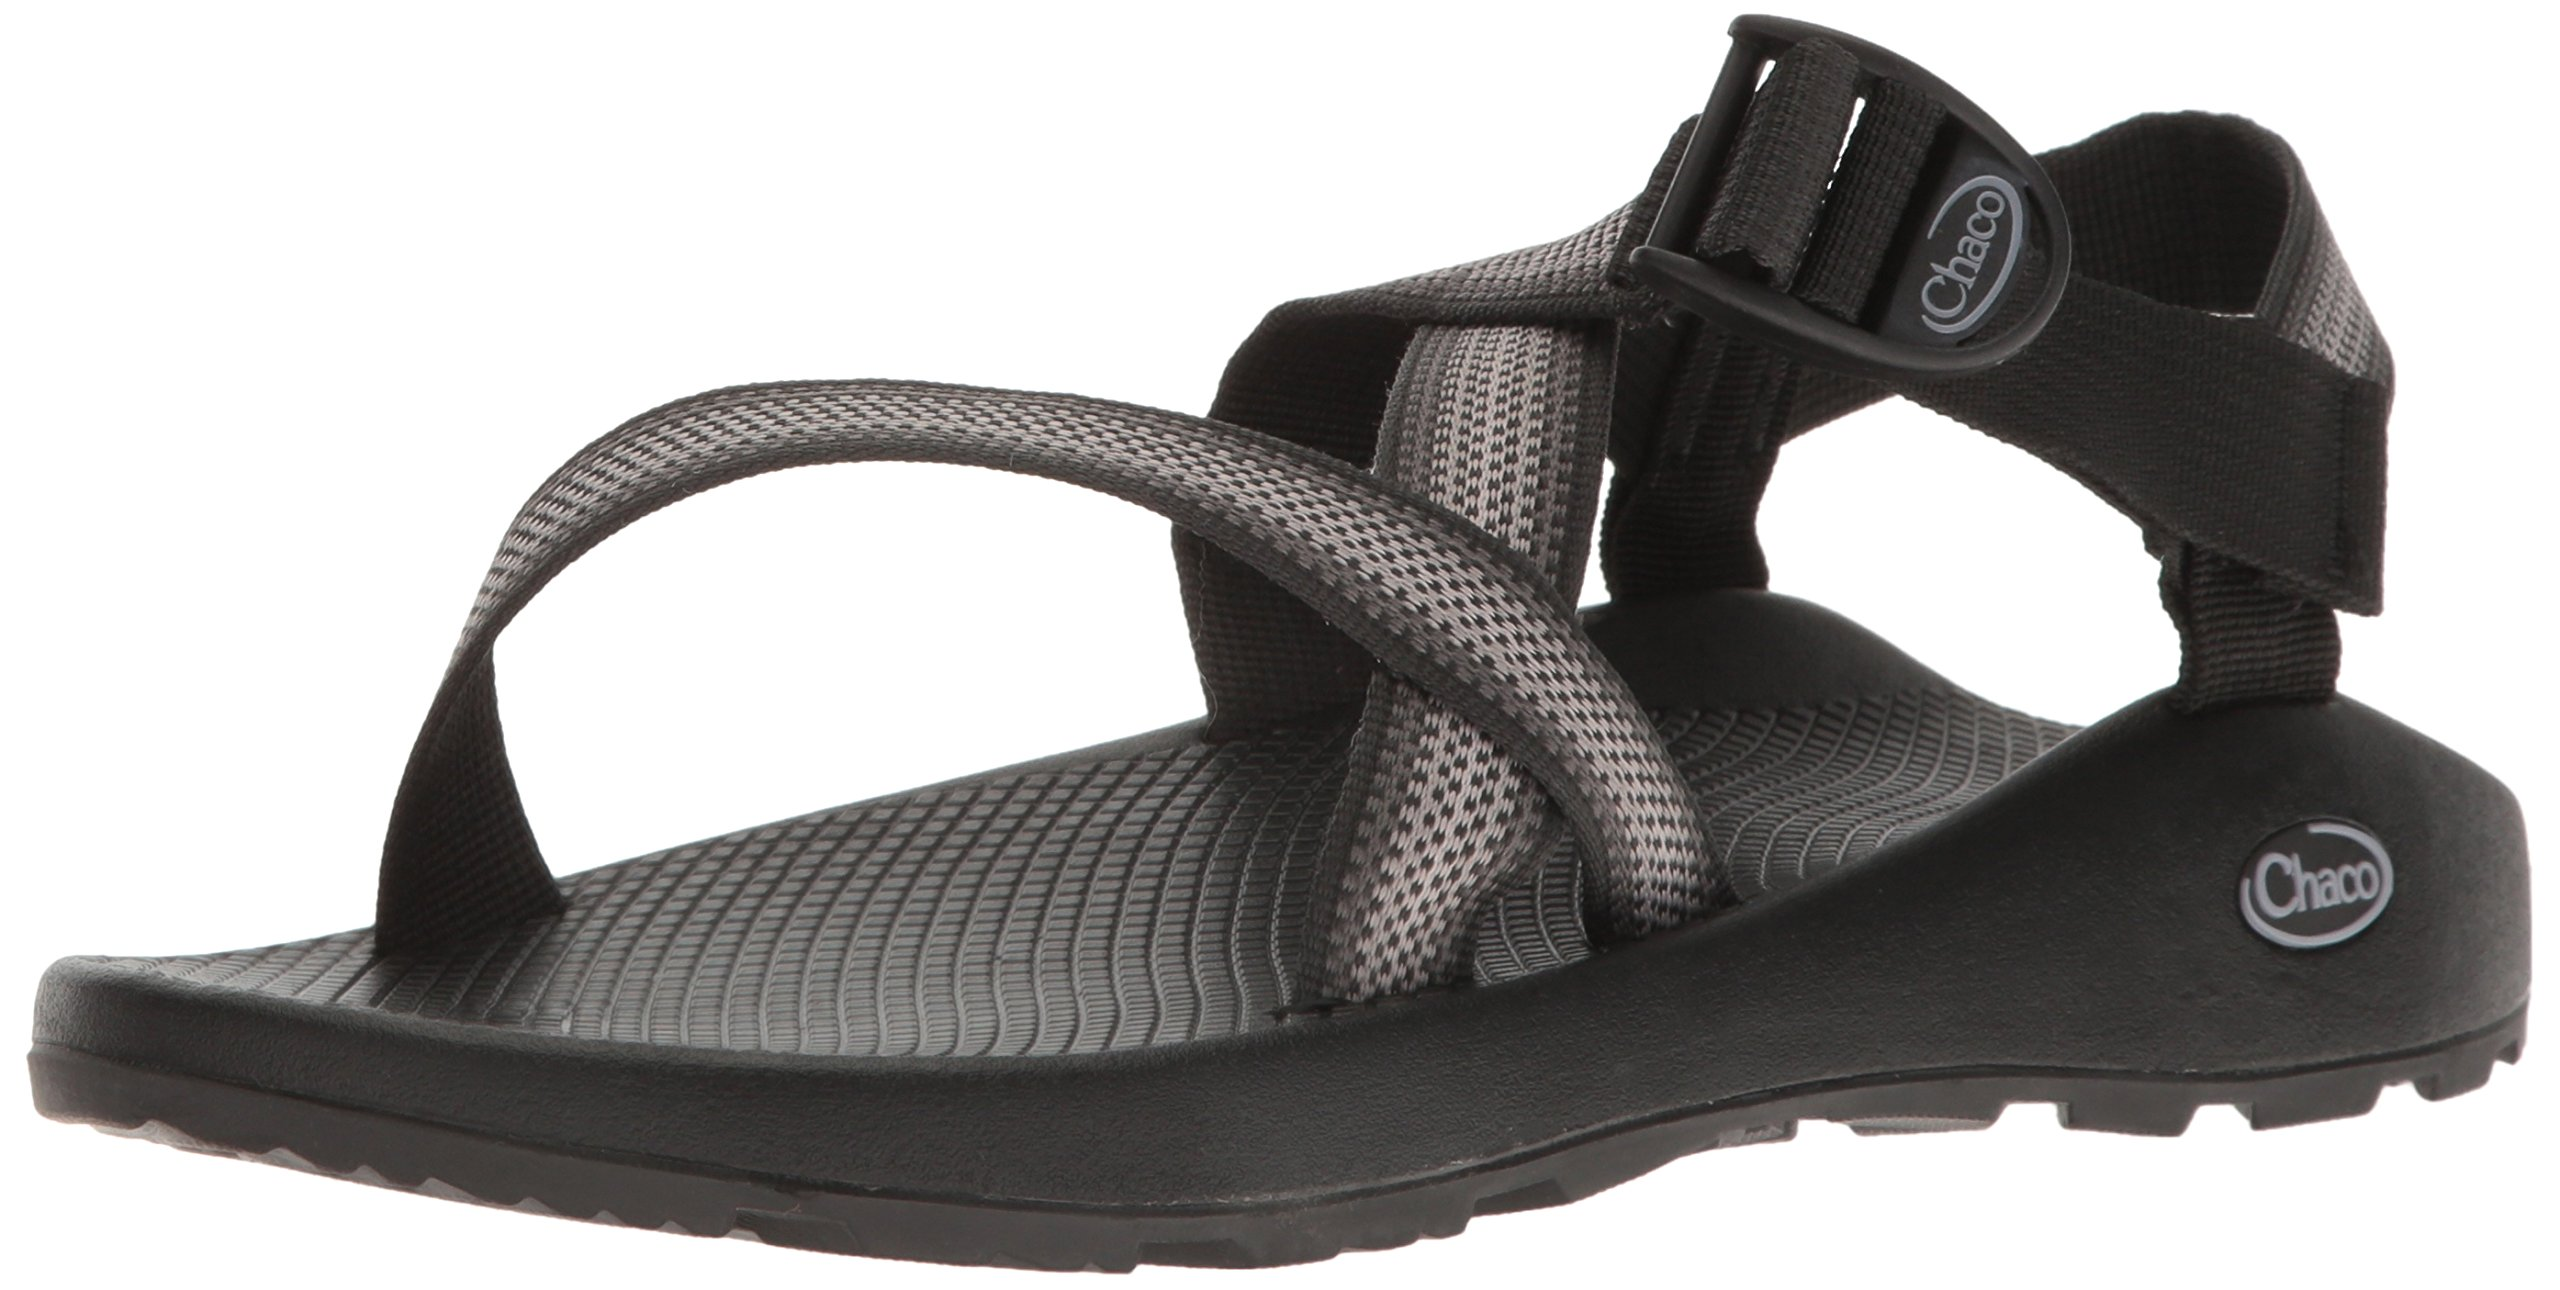 Chaco Men's Z1 Classic Athletic Sandal, Split Gray, 11 M US